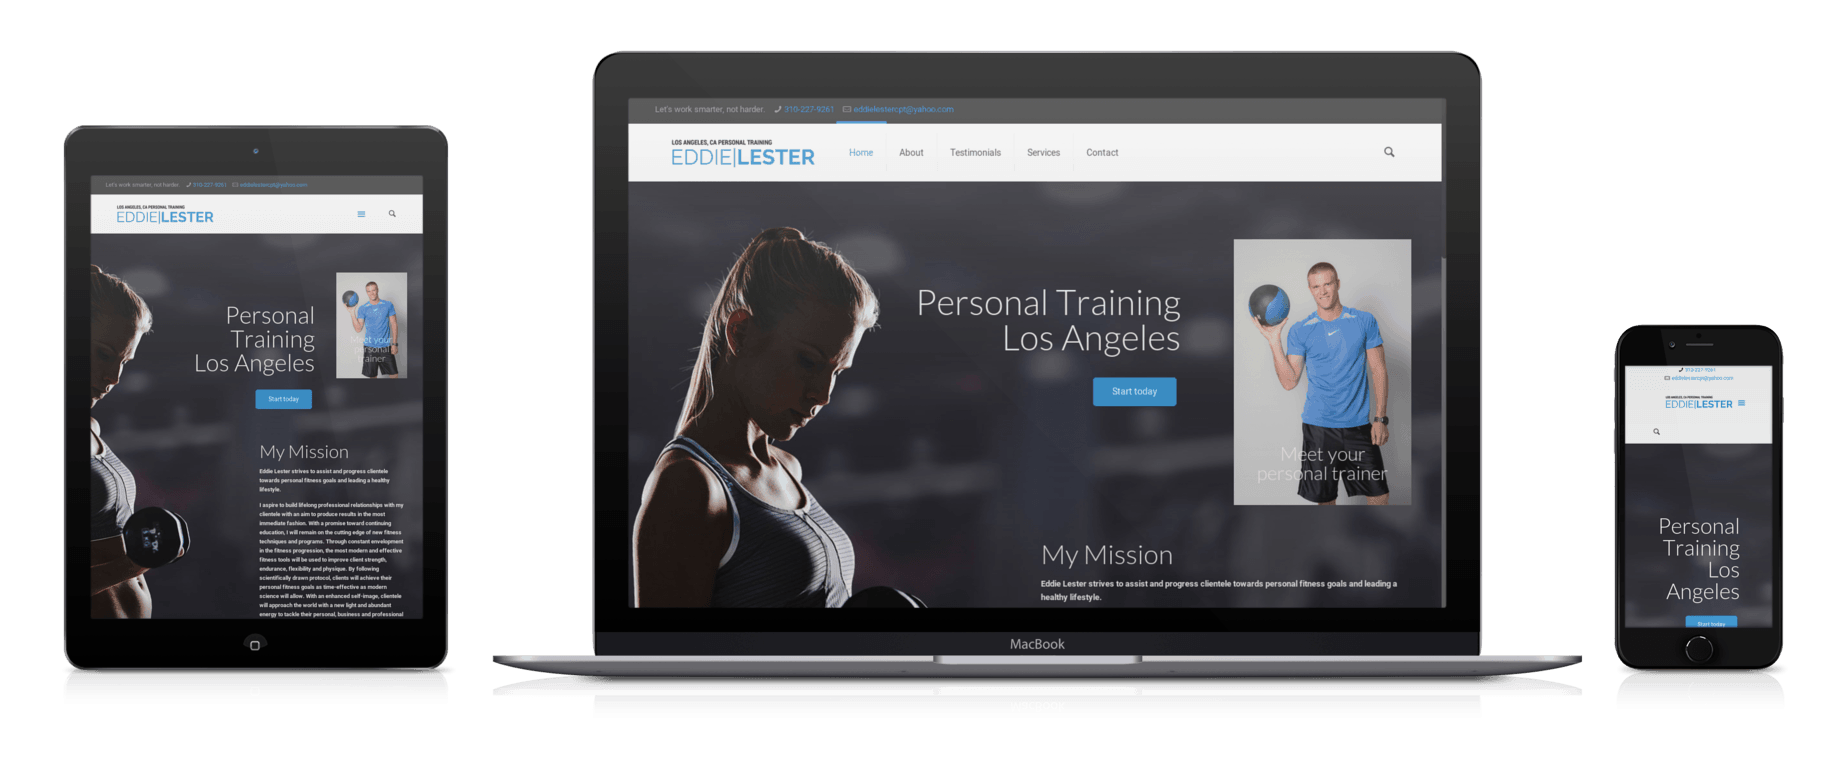 19 personal training marketing ideas for more clients personal trainer website design 1betcityfo Image collections